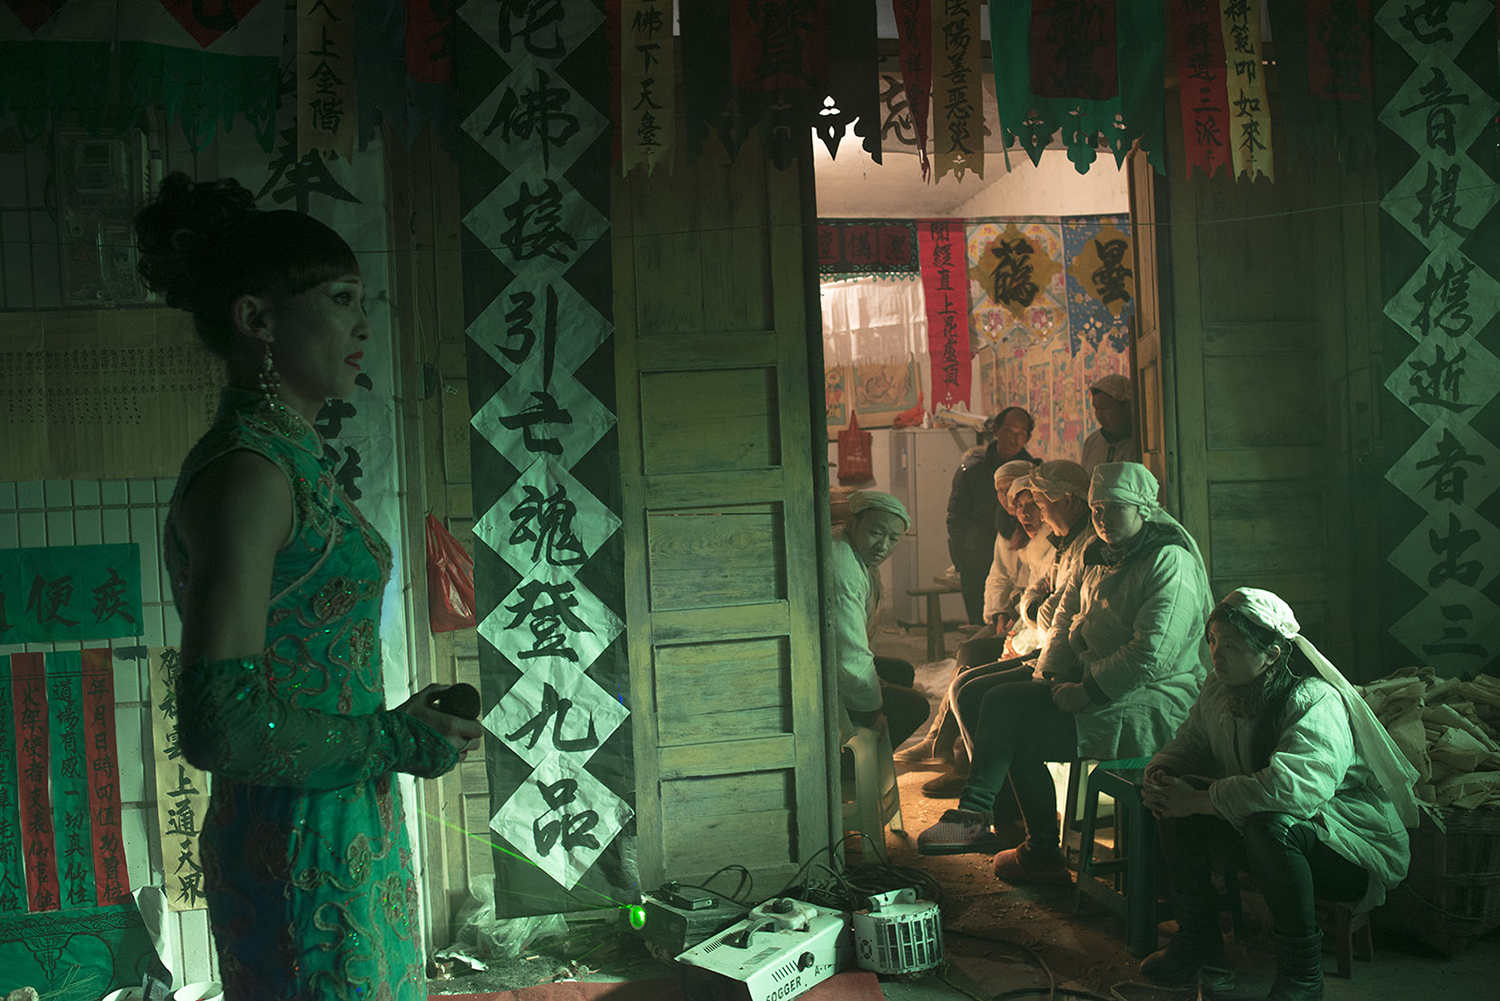 Family members of the departed watch Liangzi singing a song, December 23, 2014.